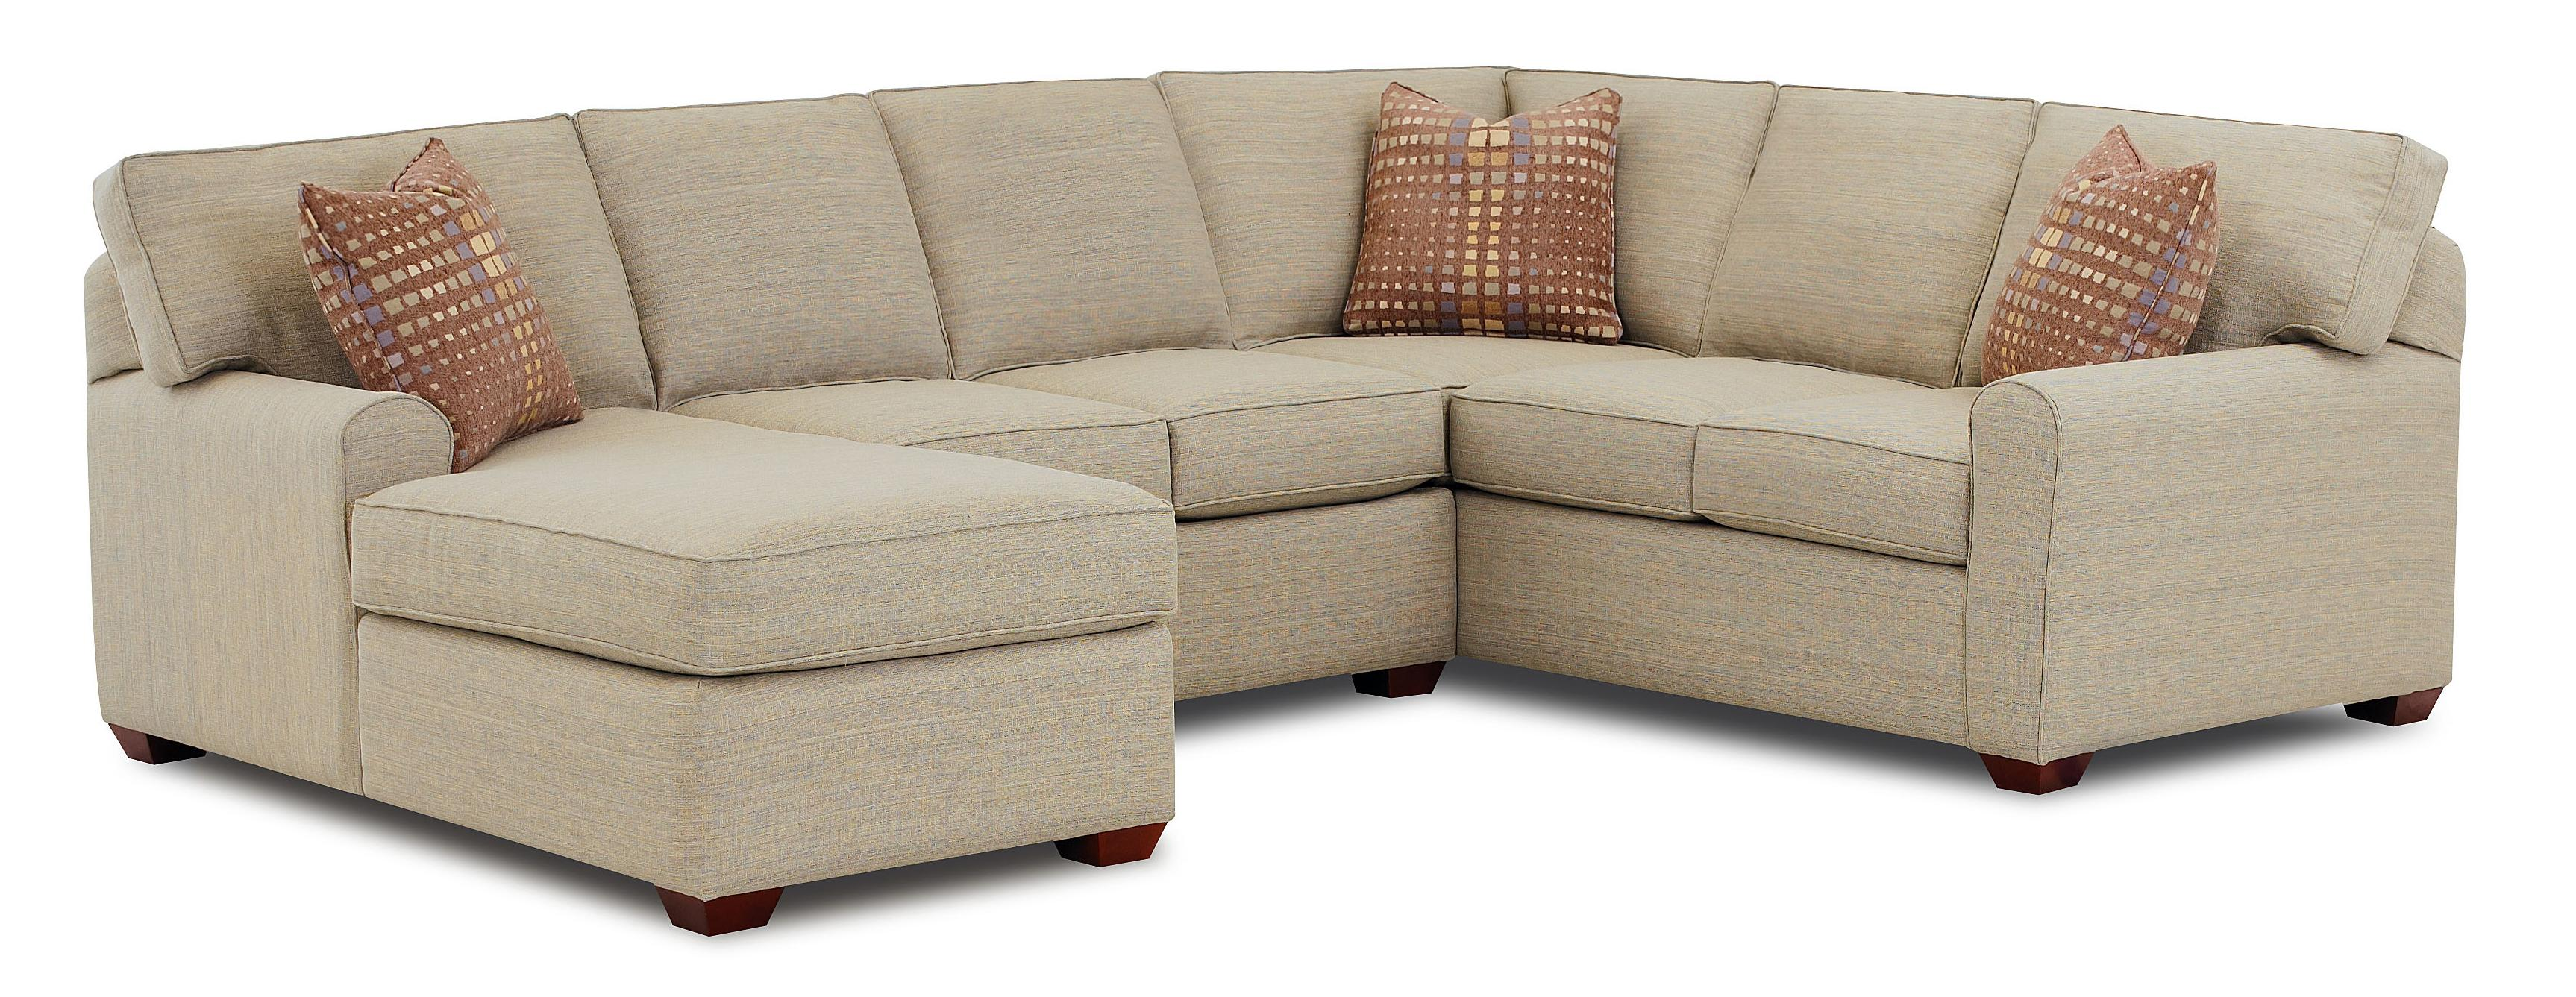 Sectional Sofa With Left Facing Chaise Lounge By Klaussner